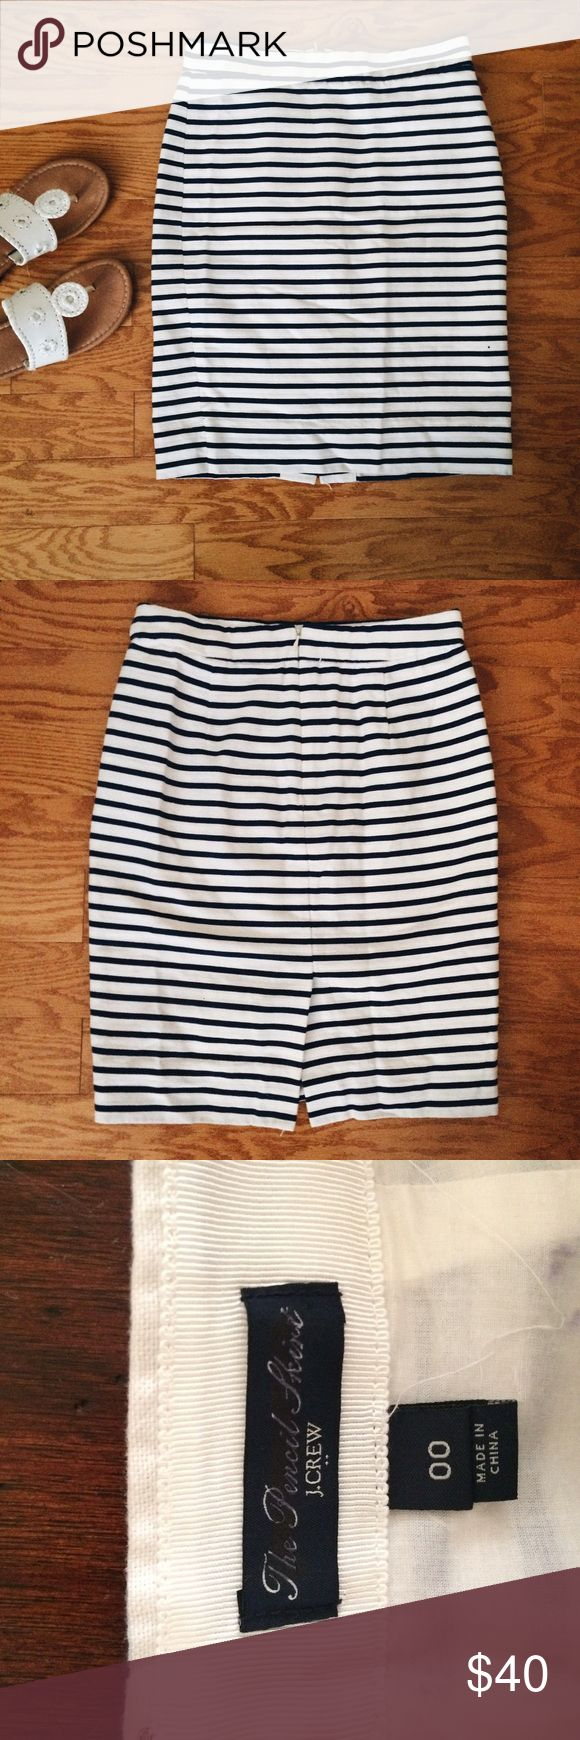 J. Crew navy and white pencil skirt This navy and white striped pencil skirt is a staple in any closet! Perfect for work, and in like new condition. J. Crew Skirts Pencil